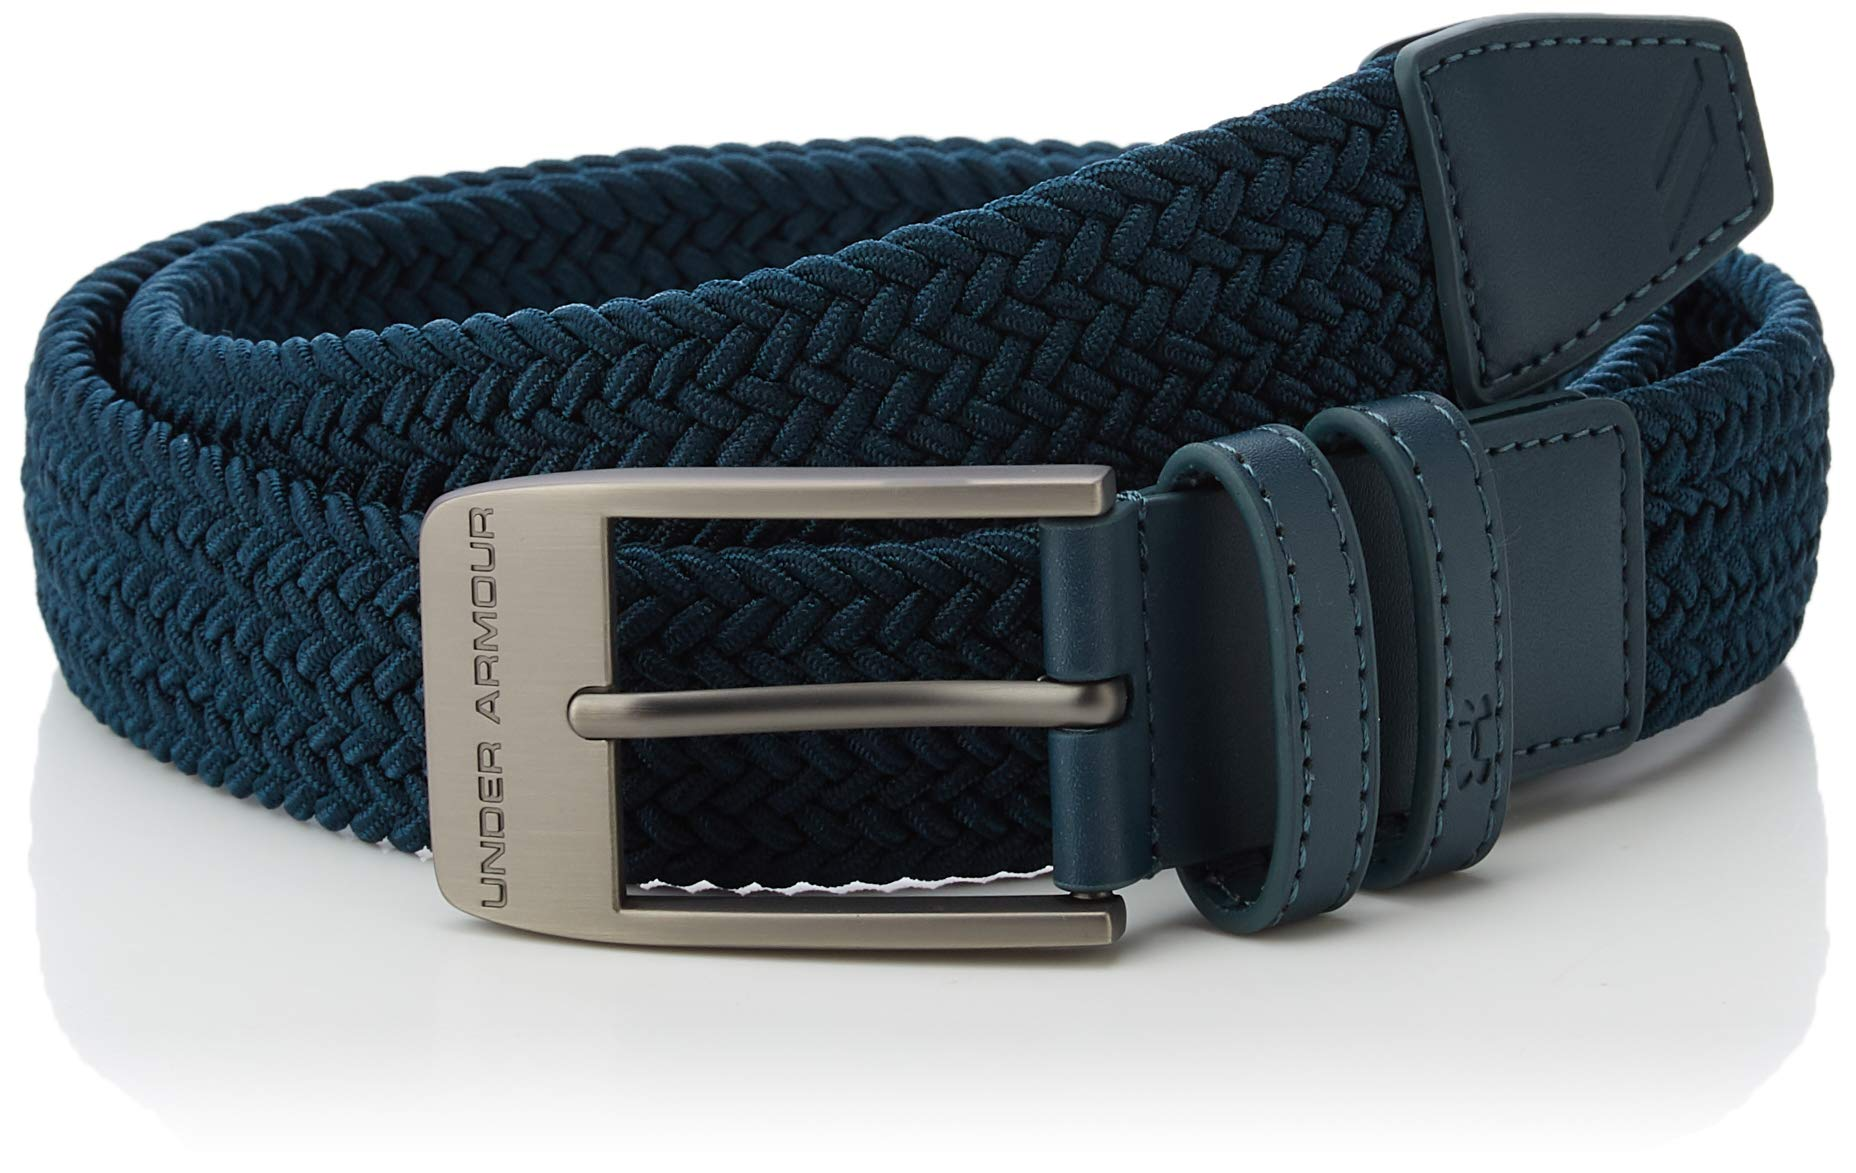 Under Armour Men's Braided Belt 2.0, Tandem Teal//Tandem Teal,38 by Under Armour